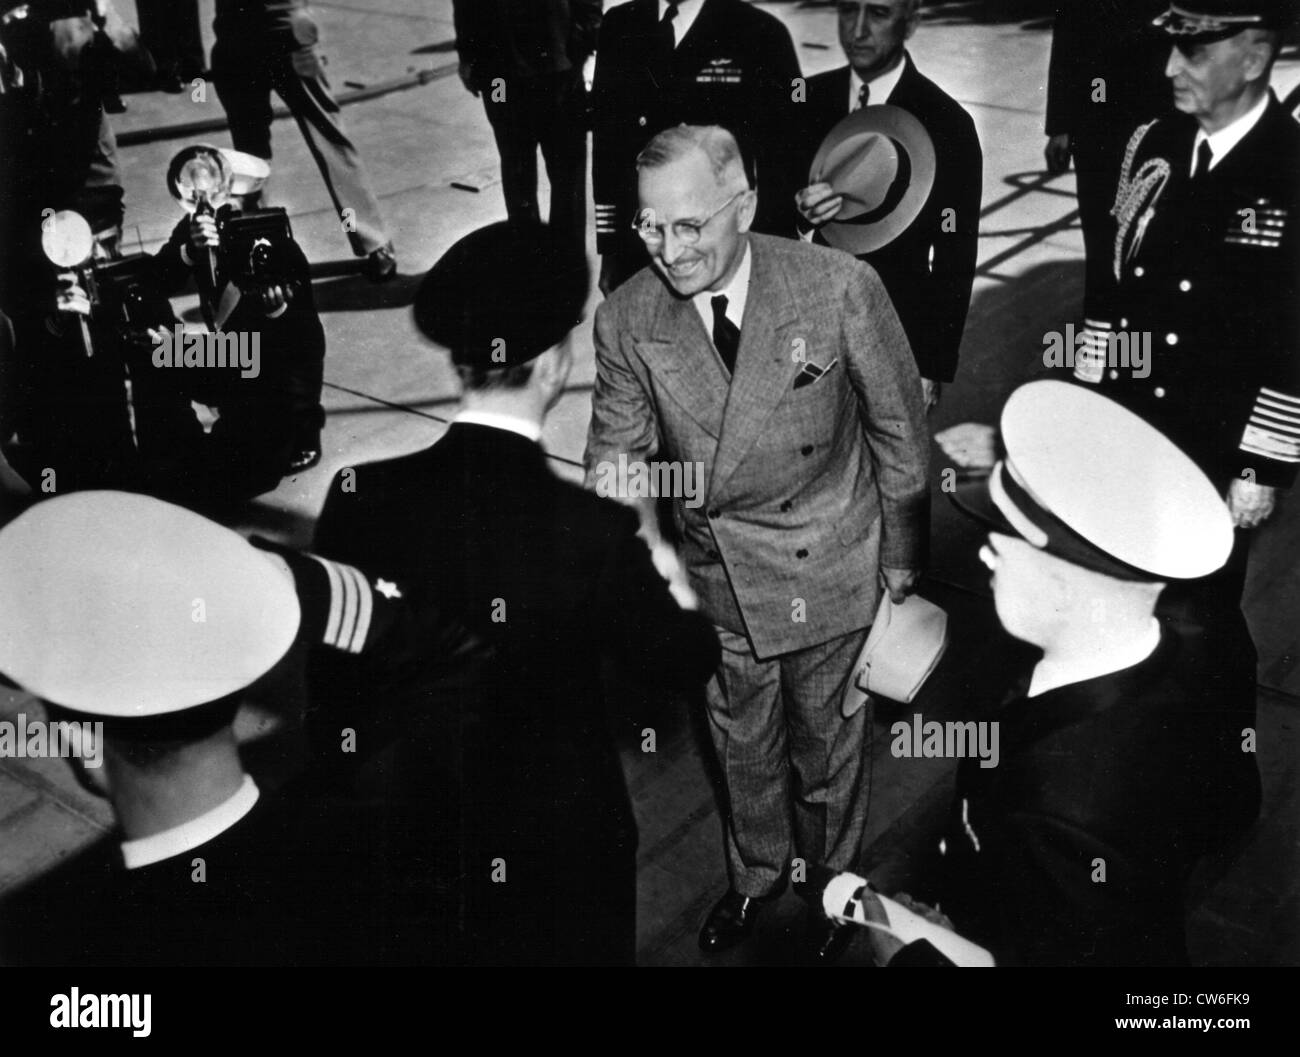 King George of England and American president Truman meet August 2, 1945 - Stock Image